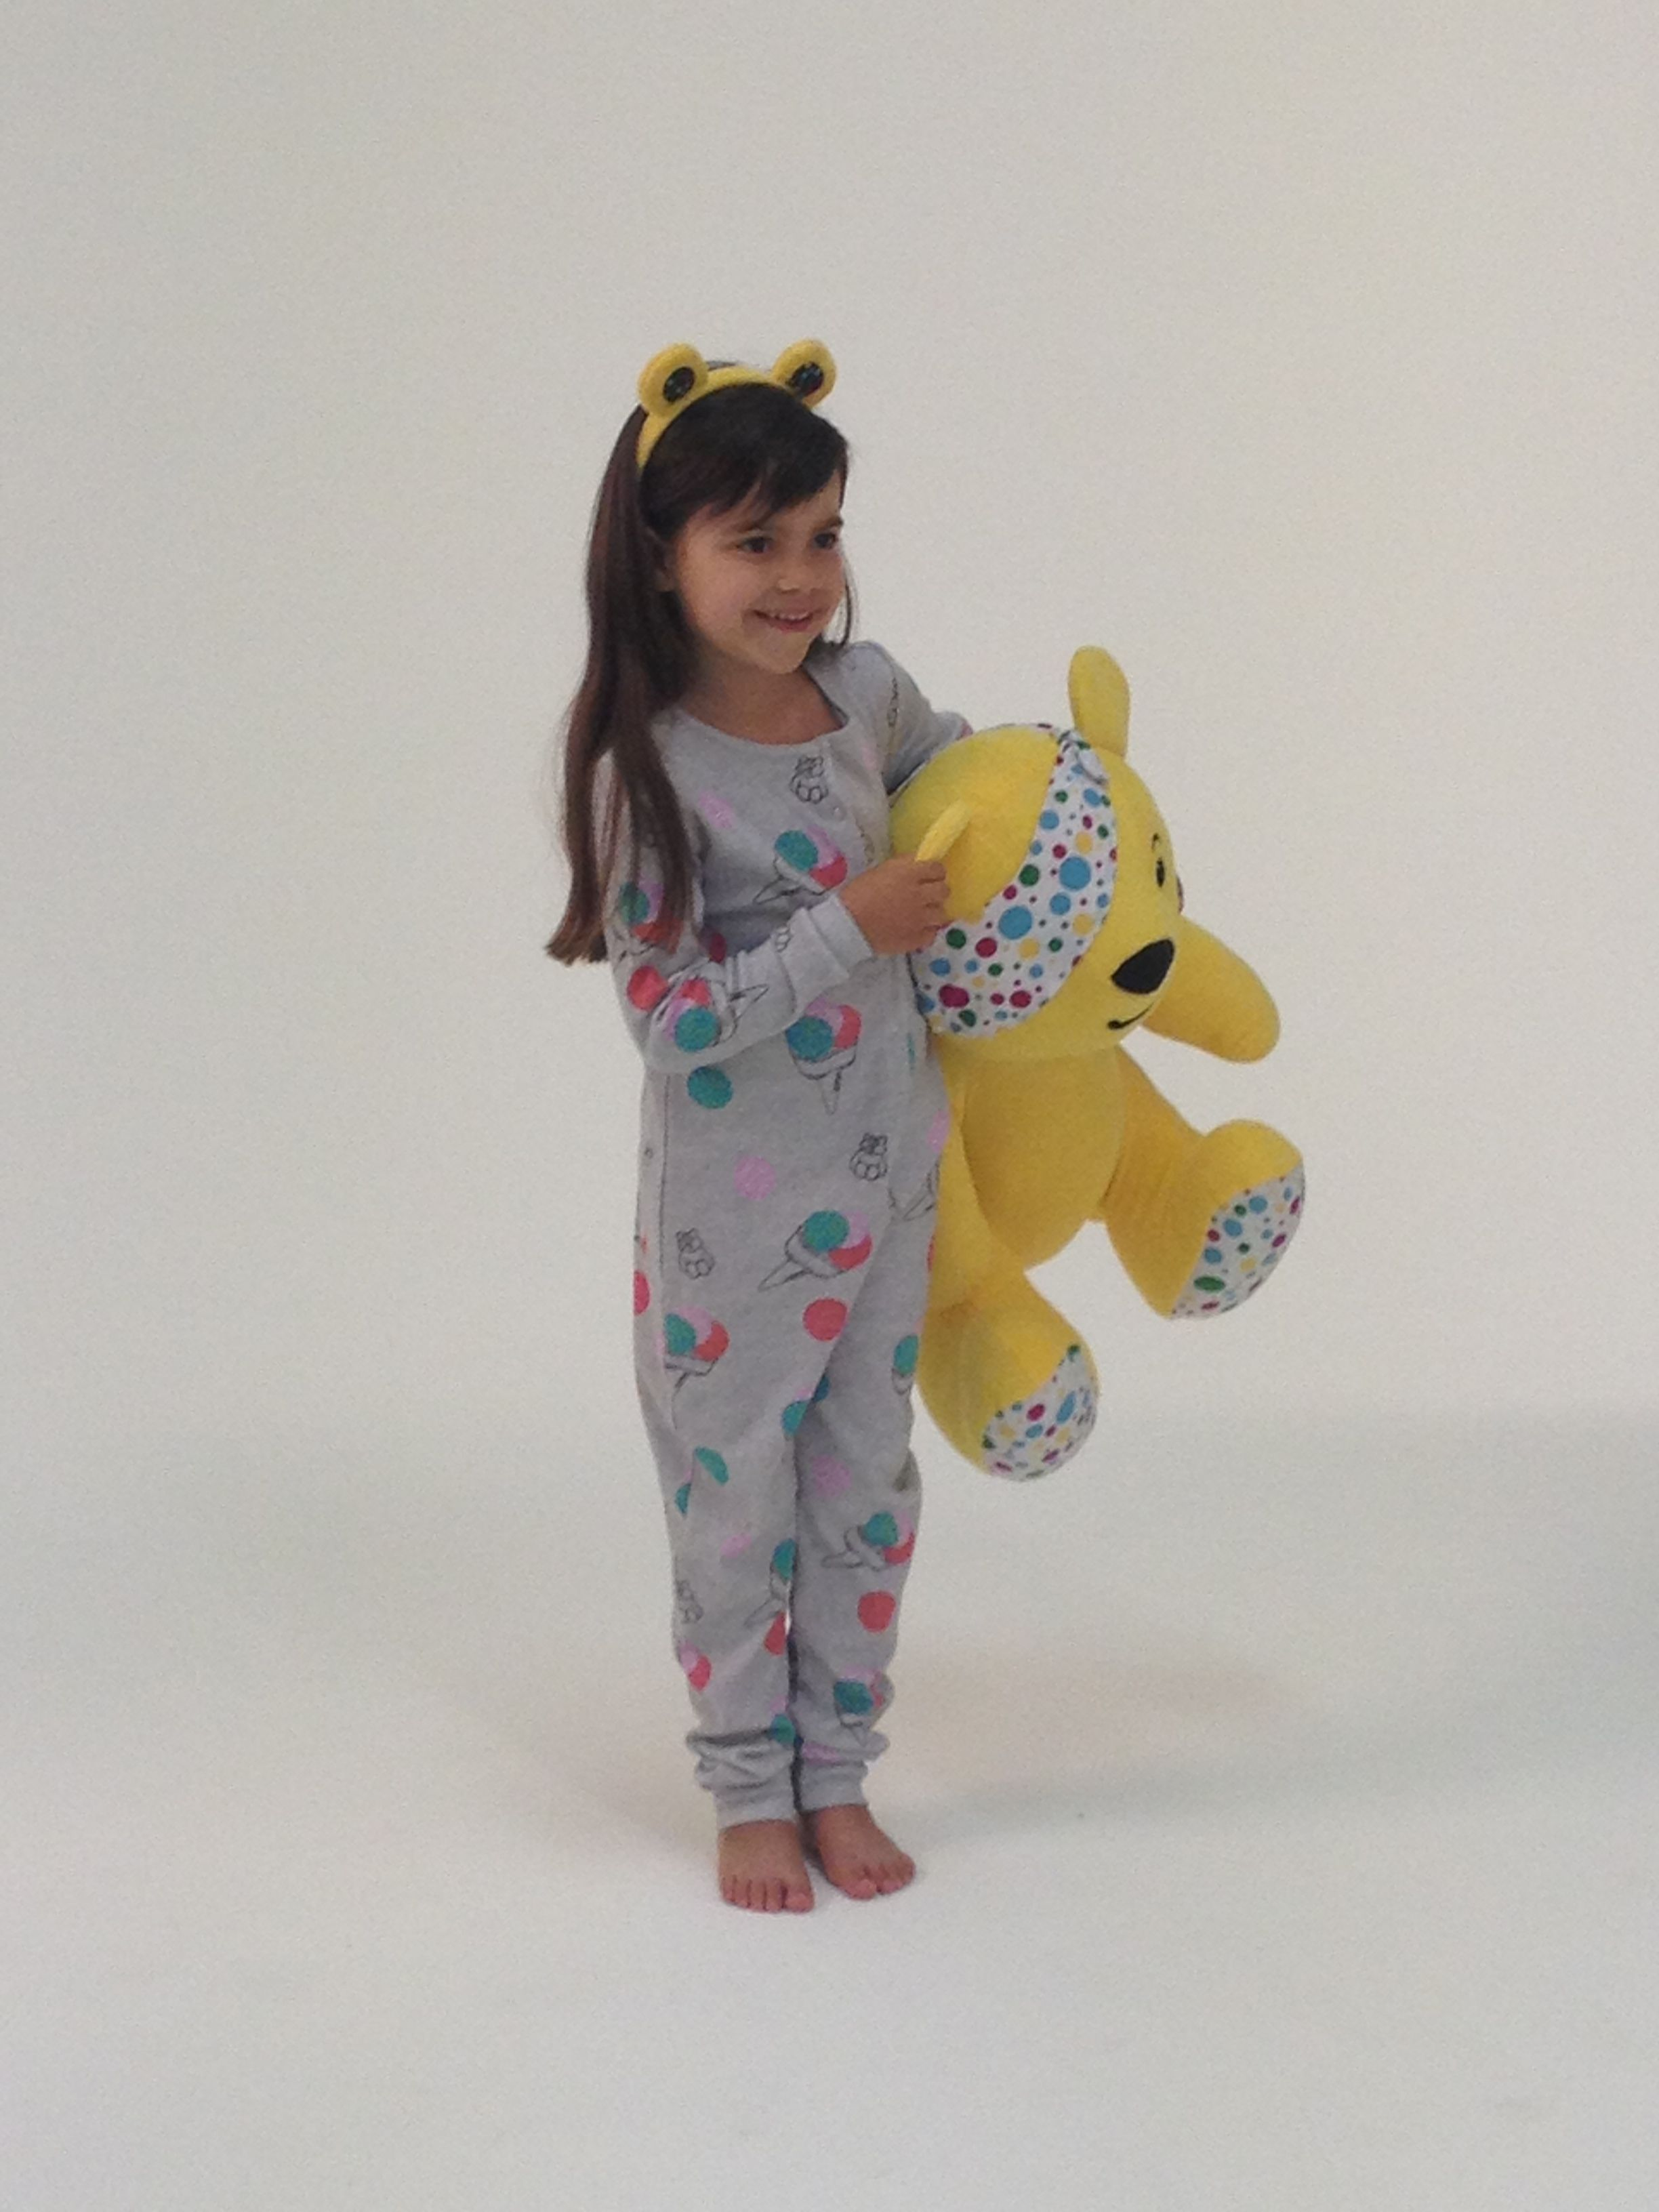 A sneak peek into the new Children in Need collection!